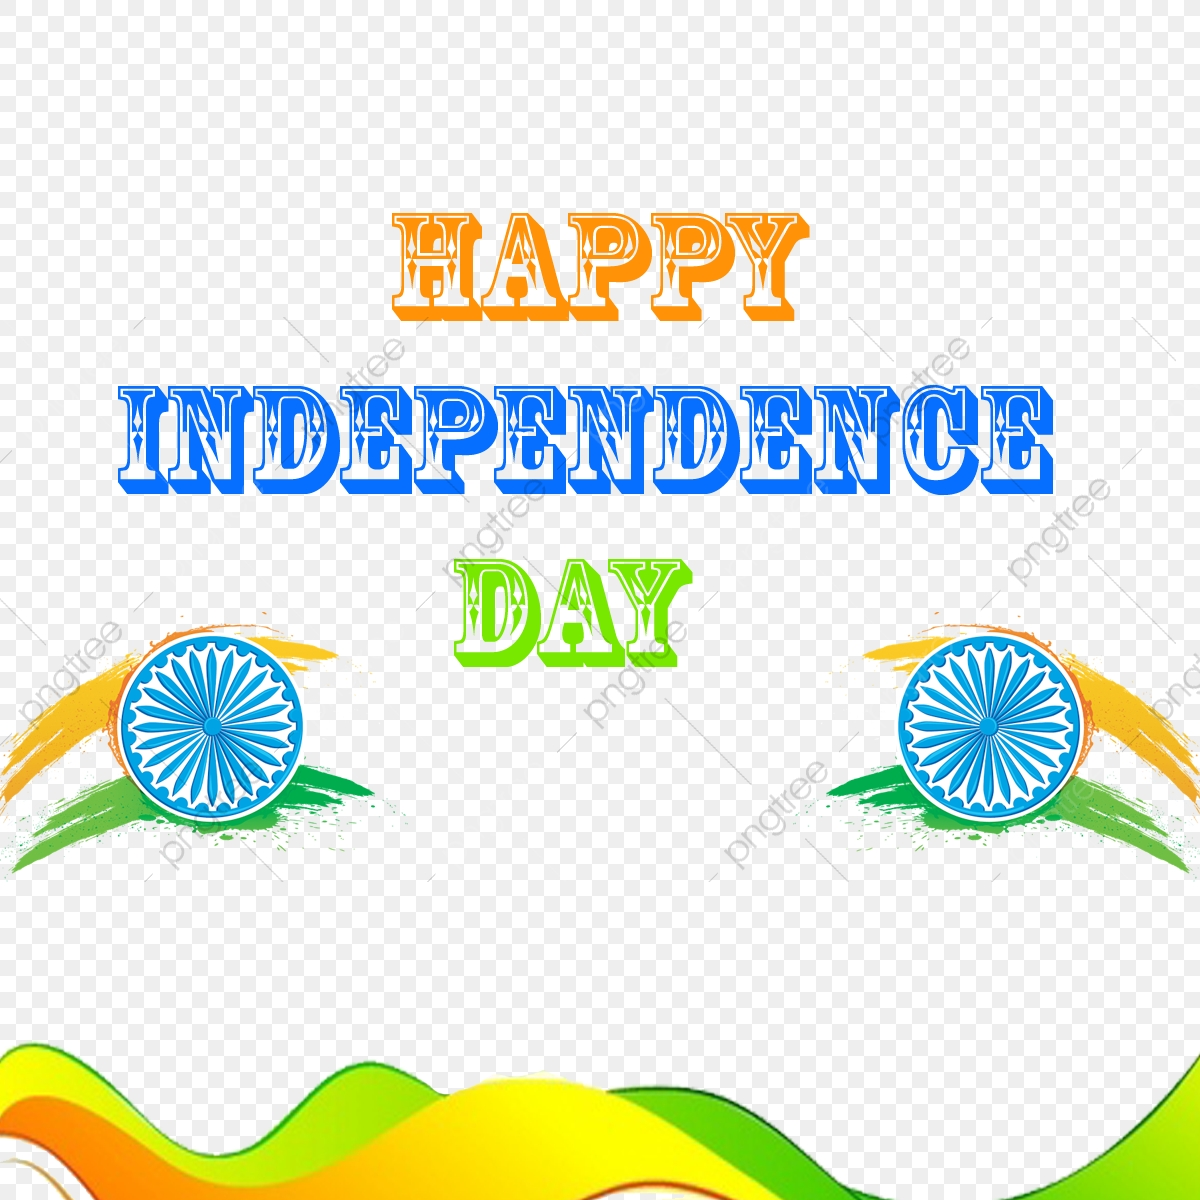 Happy Independence Day Wishes India 2018, Greetings, Happy.